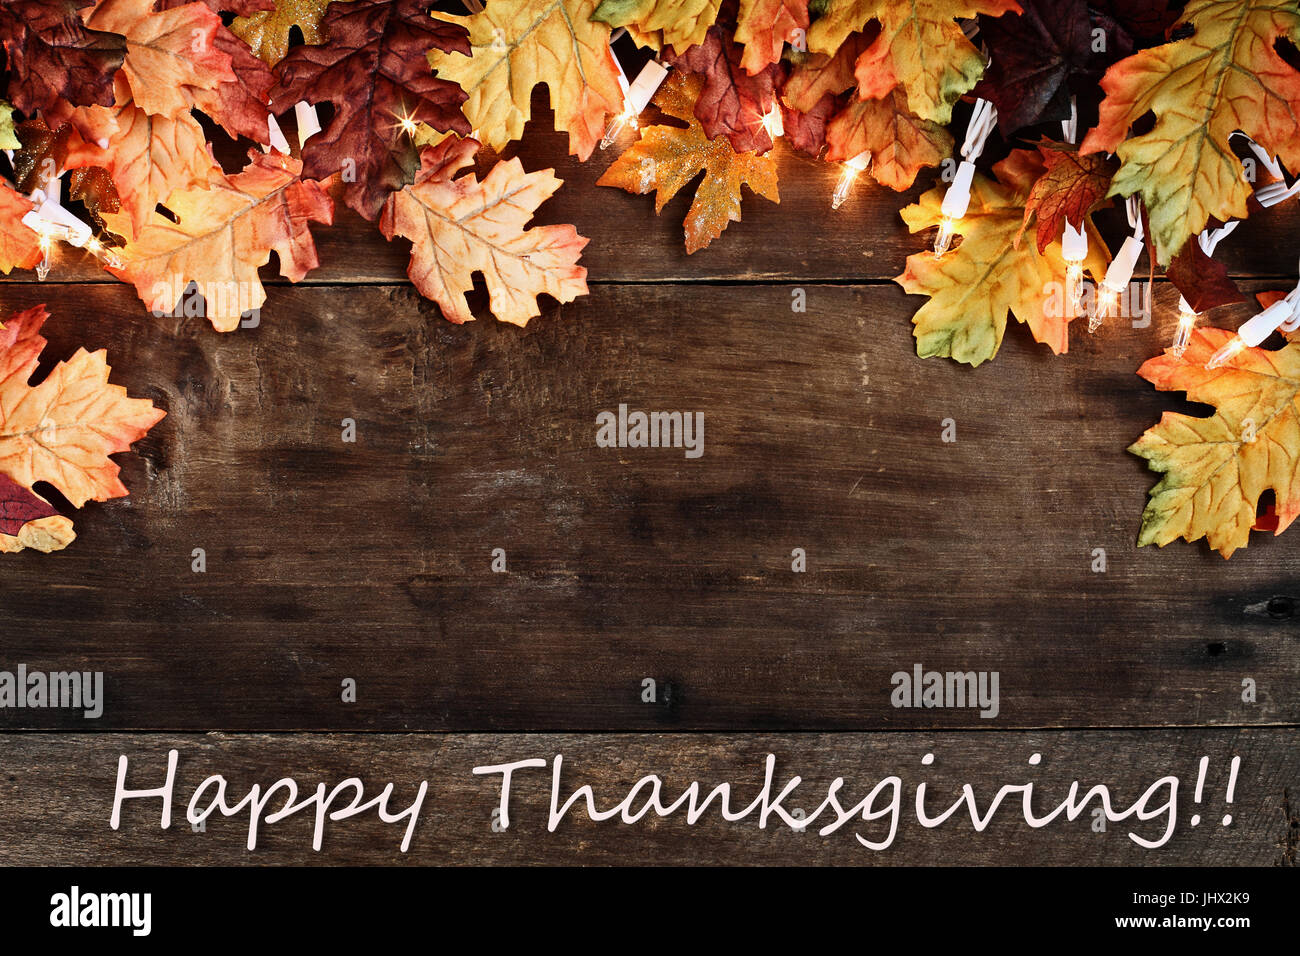 Rustic Fall Background Of Autumn Leaves And Decorative Lights With Happy Thanksgiving Text Over A Barn Wood Image Shot From